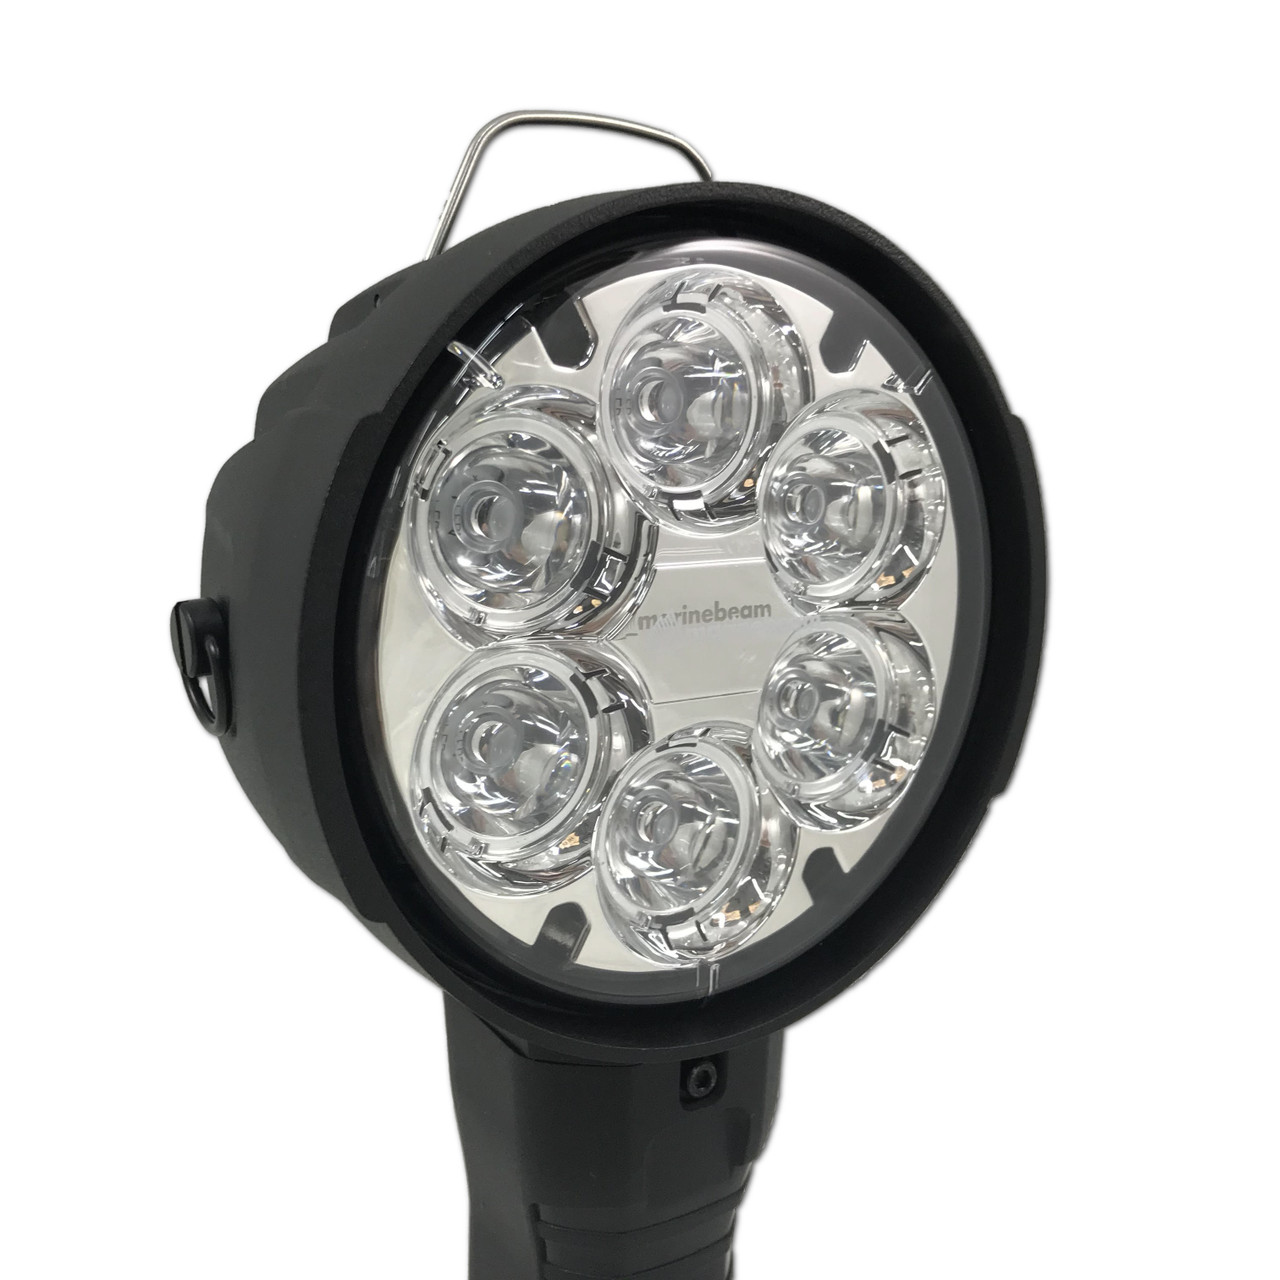 Six High-Output LEDs with TIR Lenses